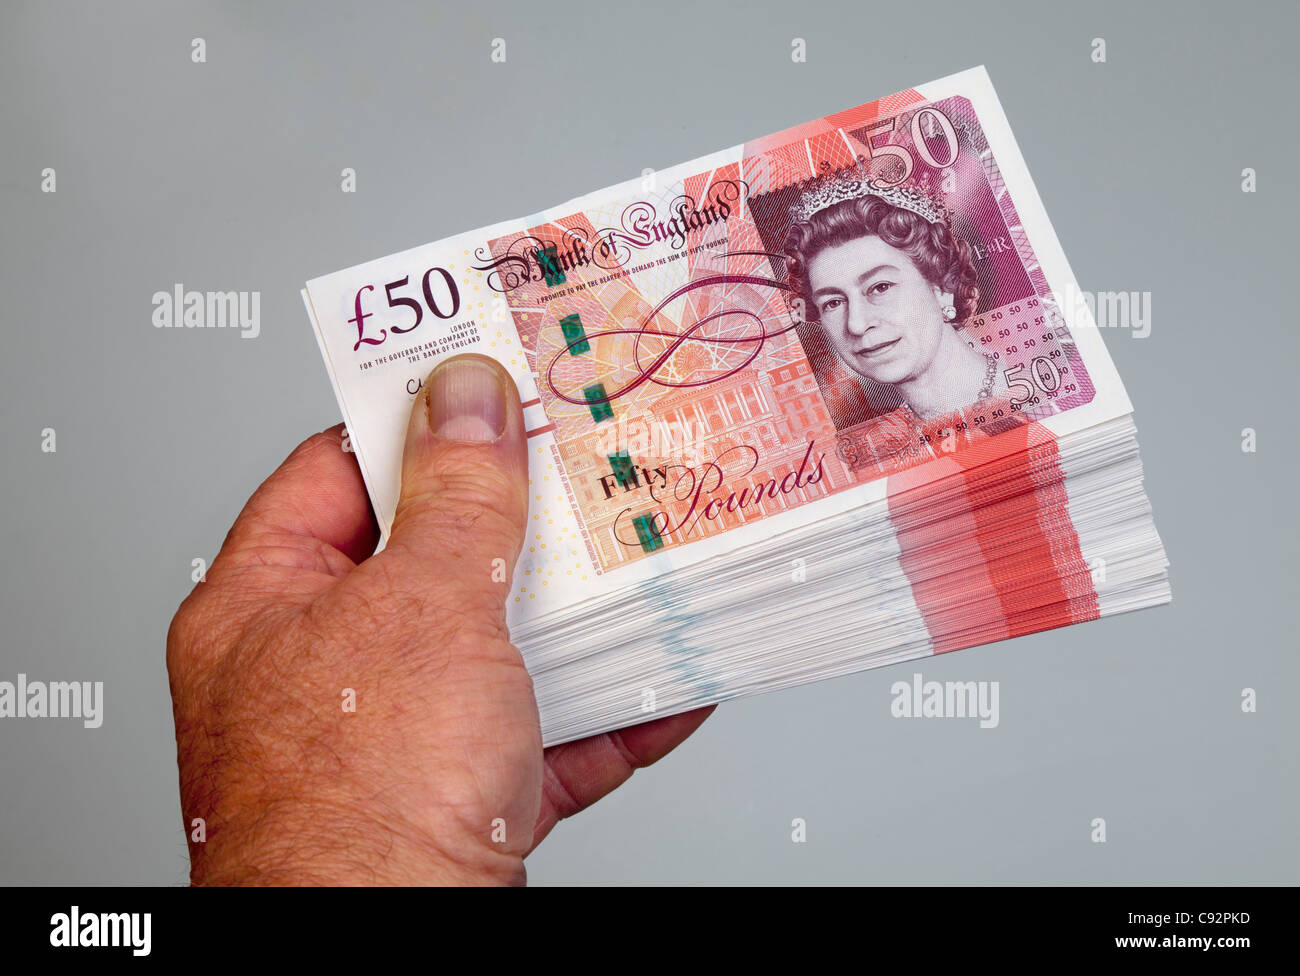 50 pound British currency bank notes £50 cash held in male hand - Stock Image